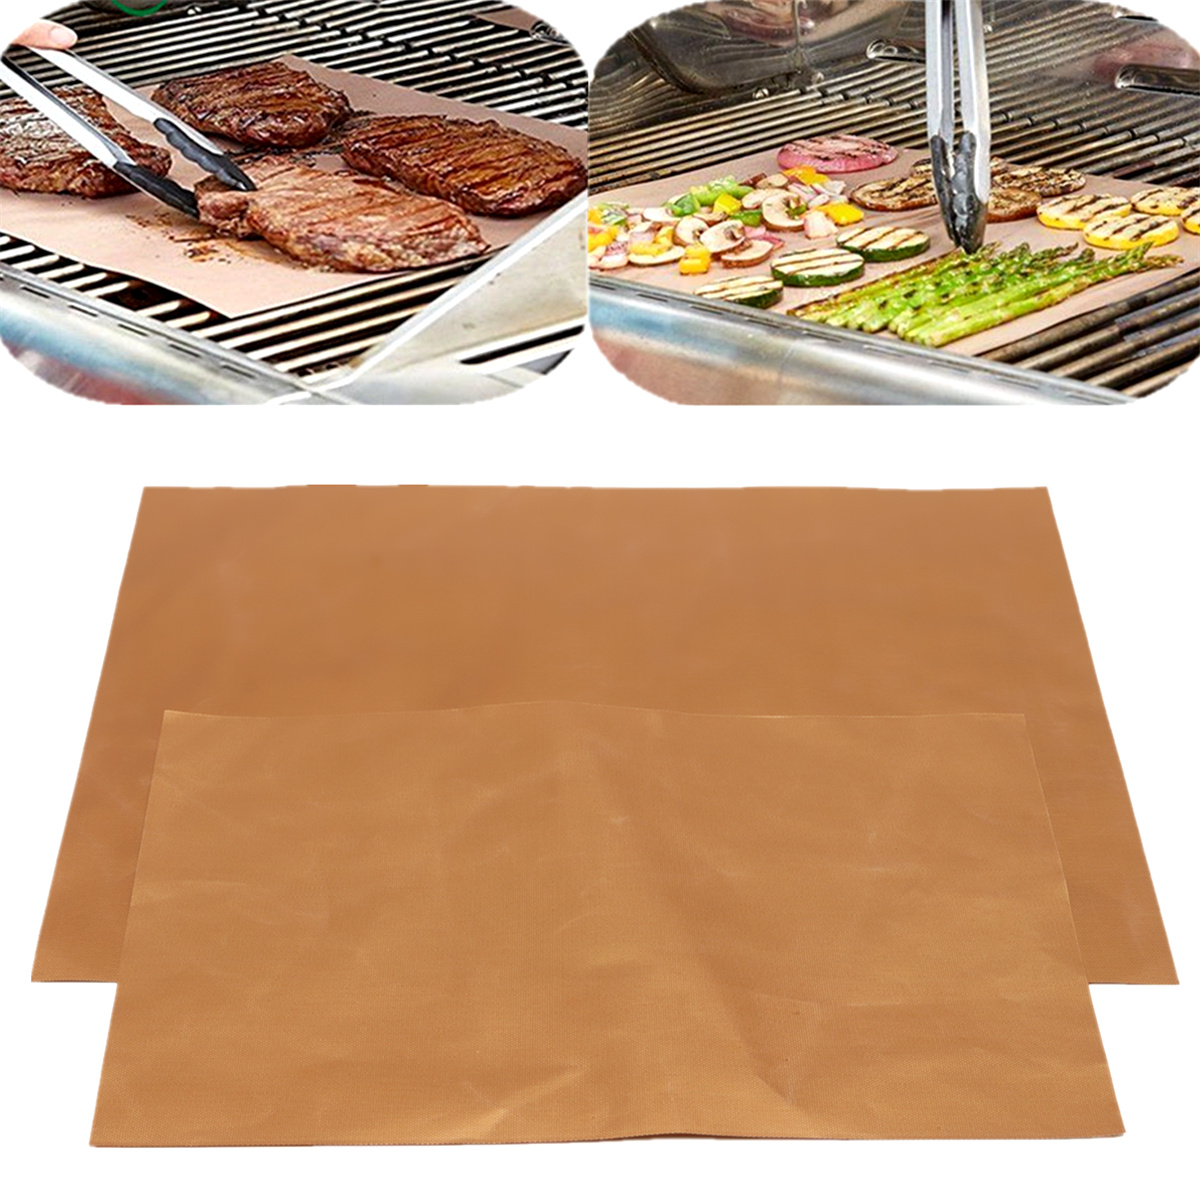 4Pcs Grill Mats BBQ And Bake Chef Non Stick Pad Camping